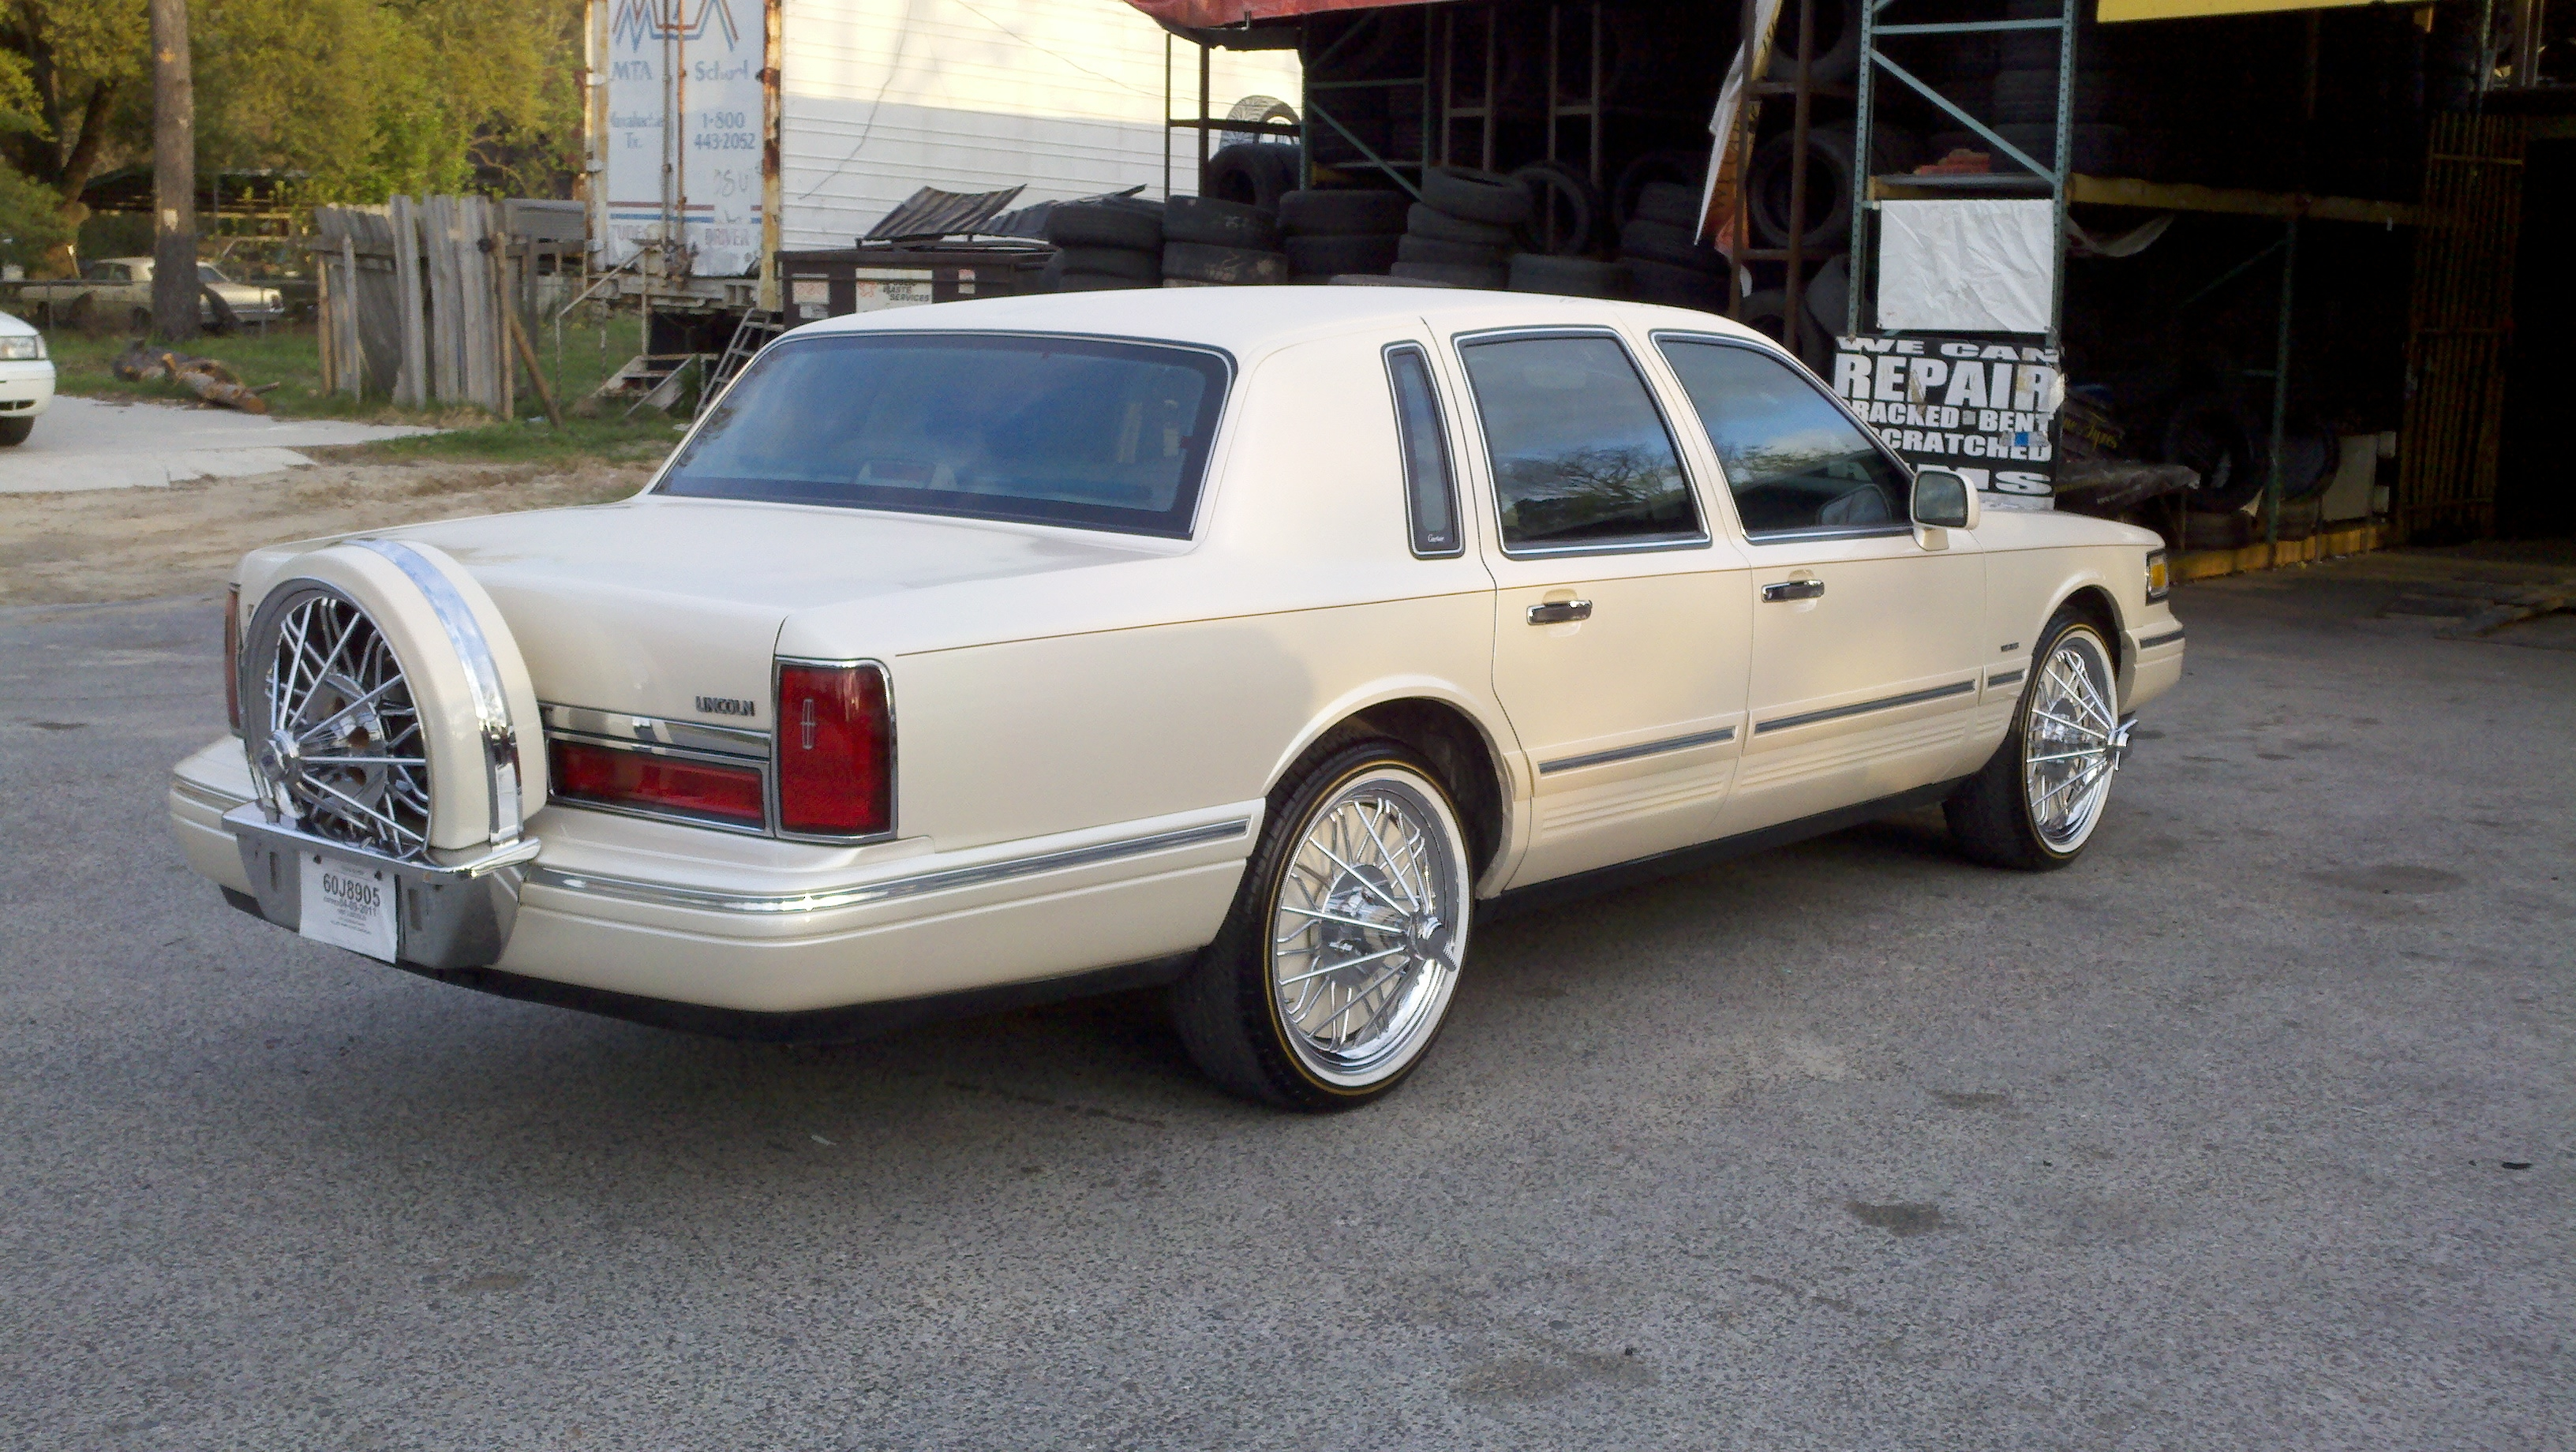 Original on 1997 Lincoln Town Car Lowrider